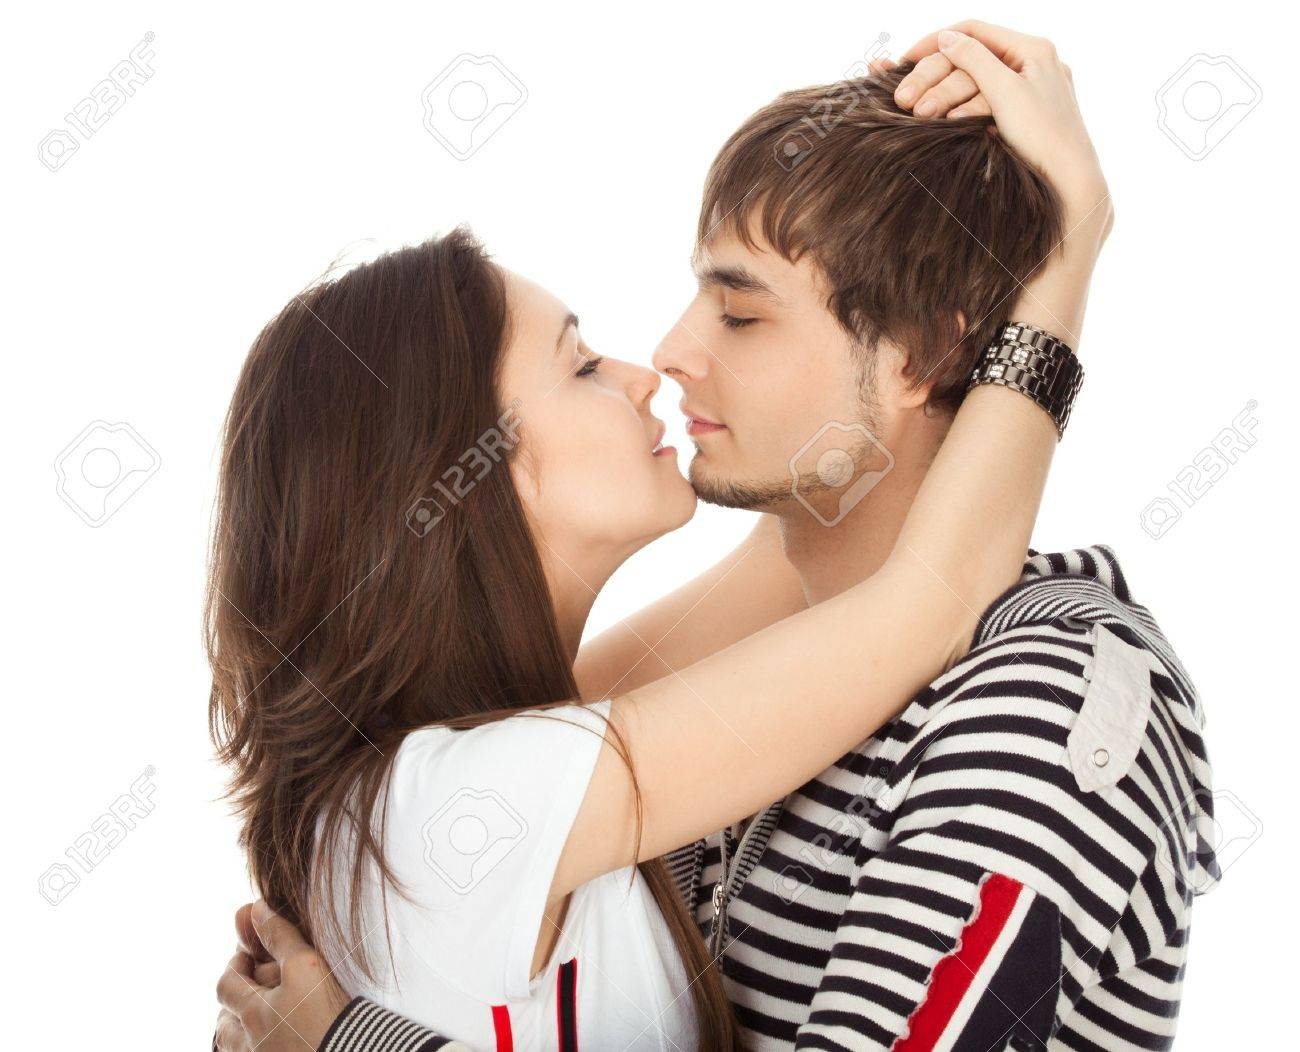 Pure Intimacy - Biblical Dating: To Kiss or Not to Kiss